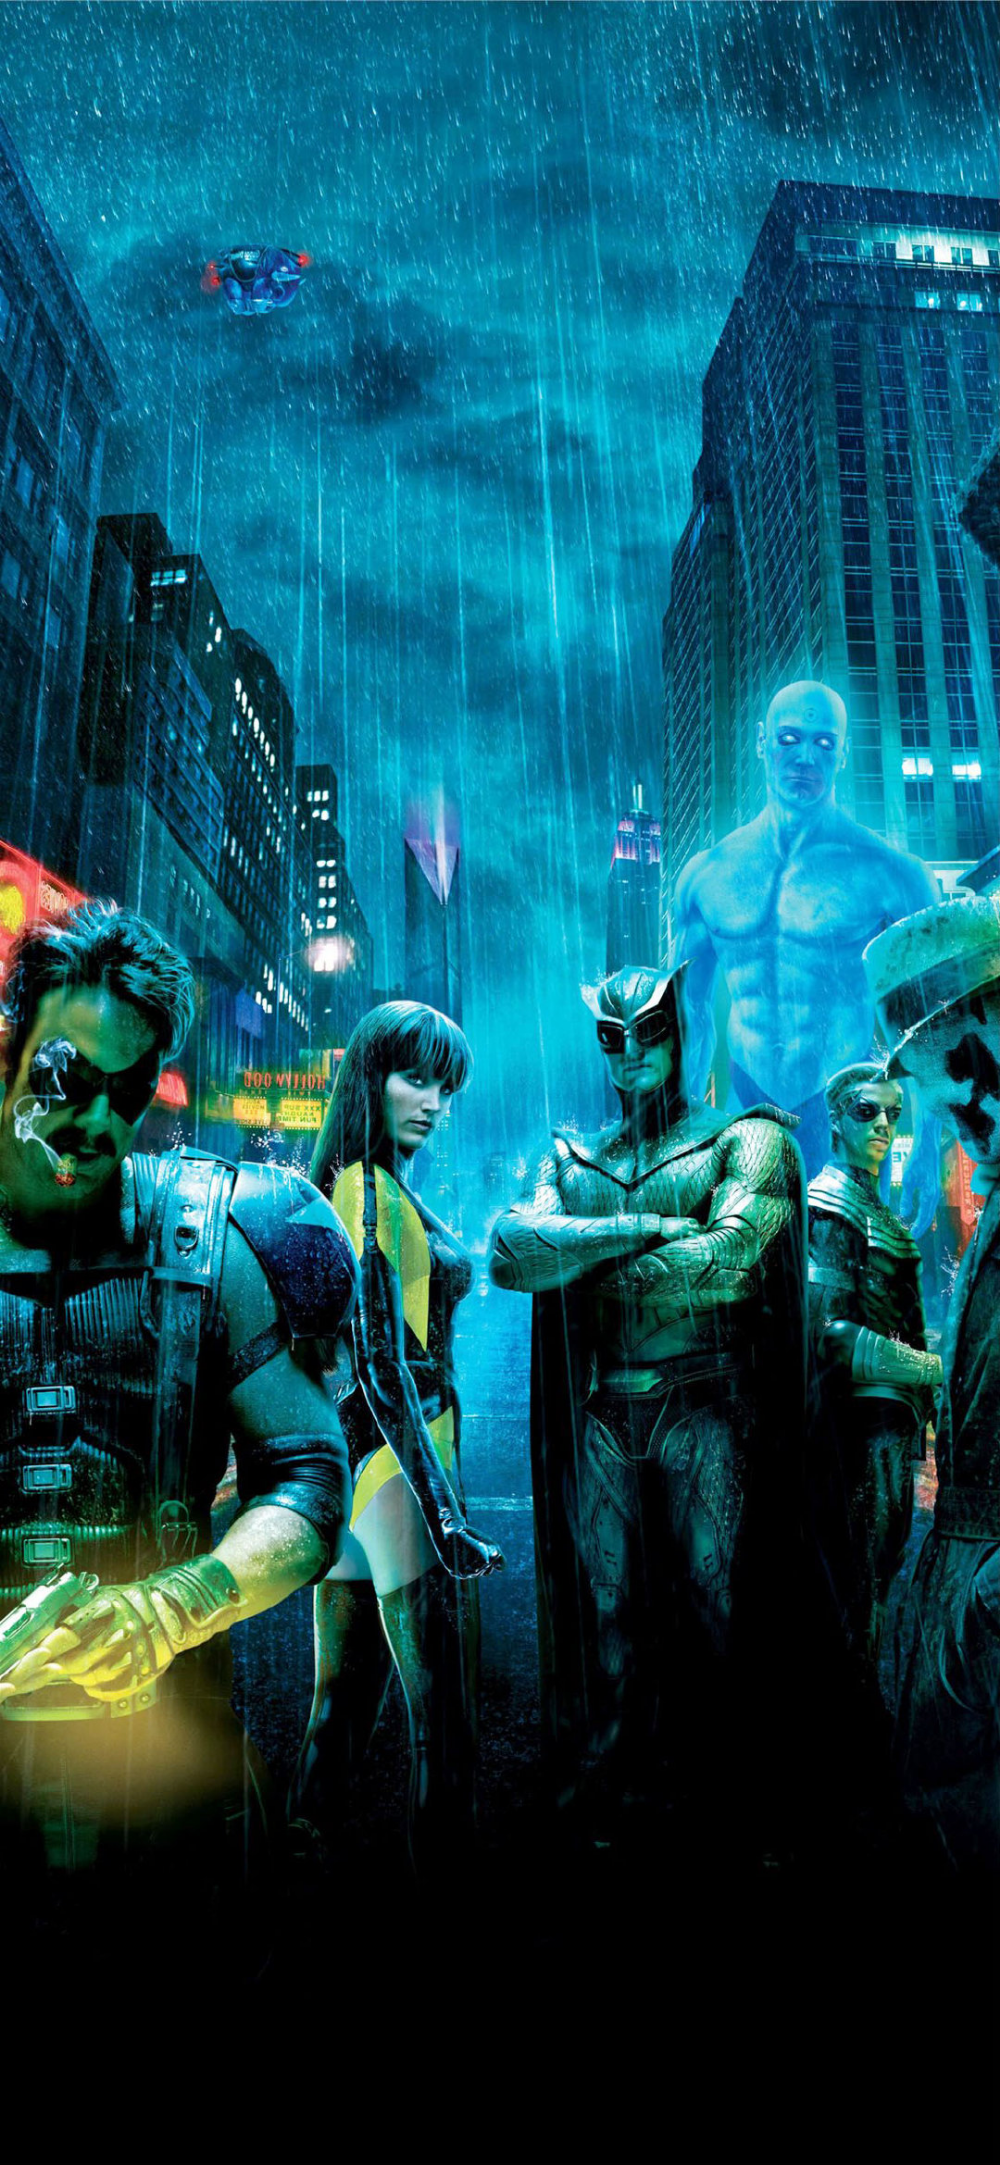 Phone Wallpaper Watchmen Iphone 11 Wallpaper Watchmen Movies 4k Watchmen Movie Posters Full Movies